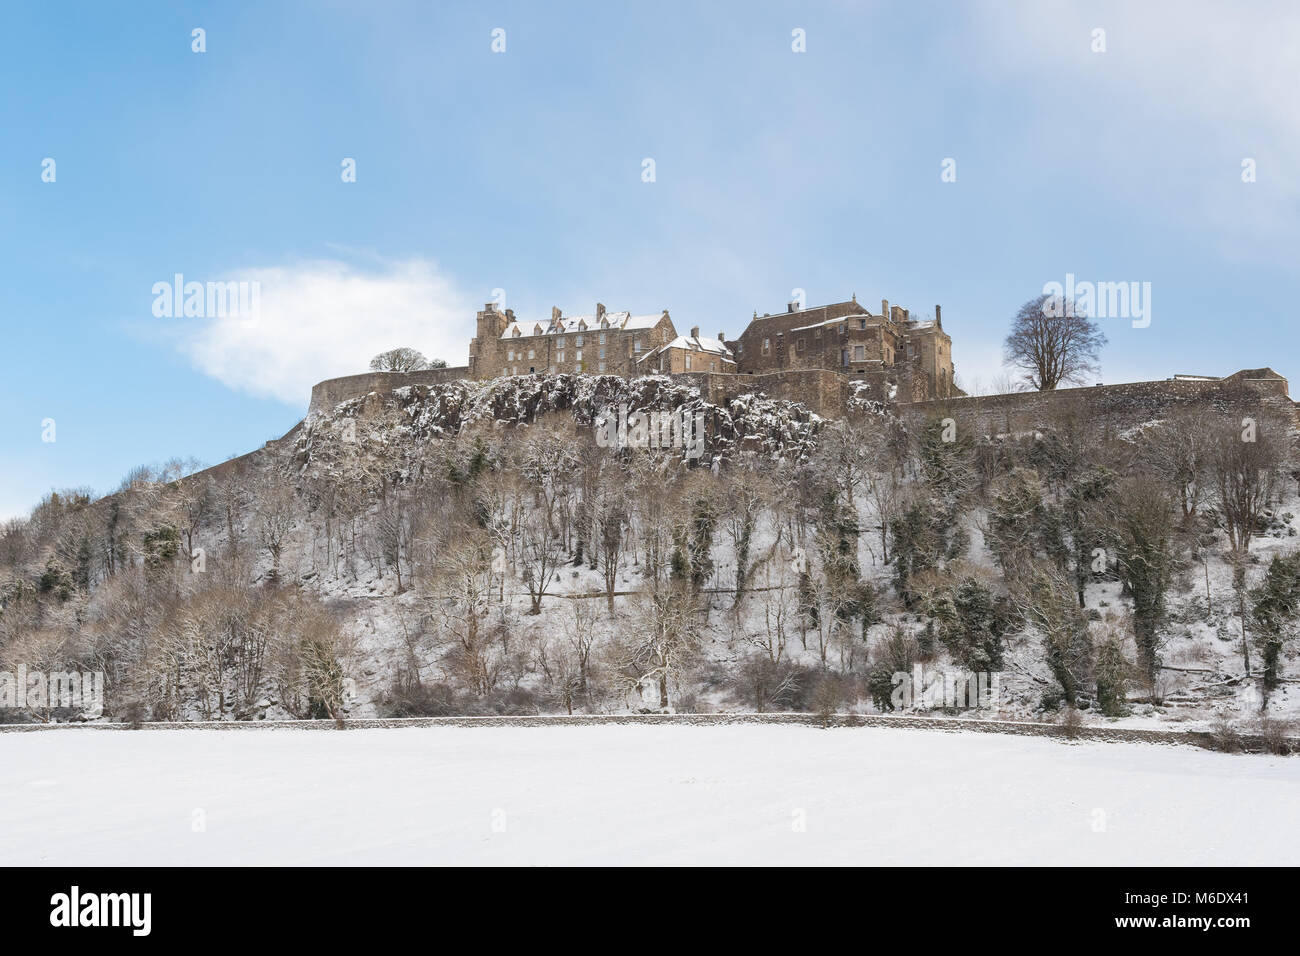 Stirling Castle in winter, Scotland, UK - Stock Image